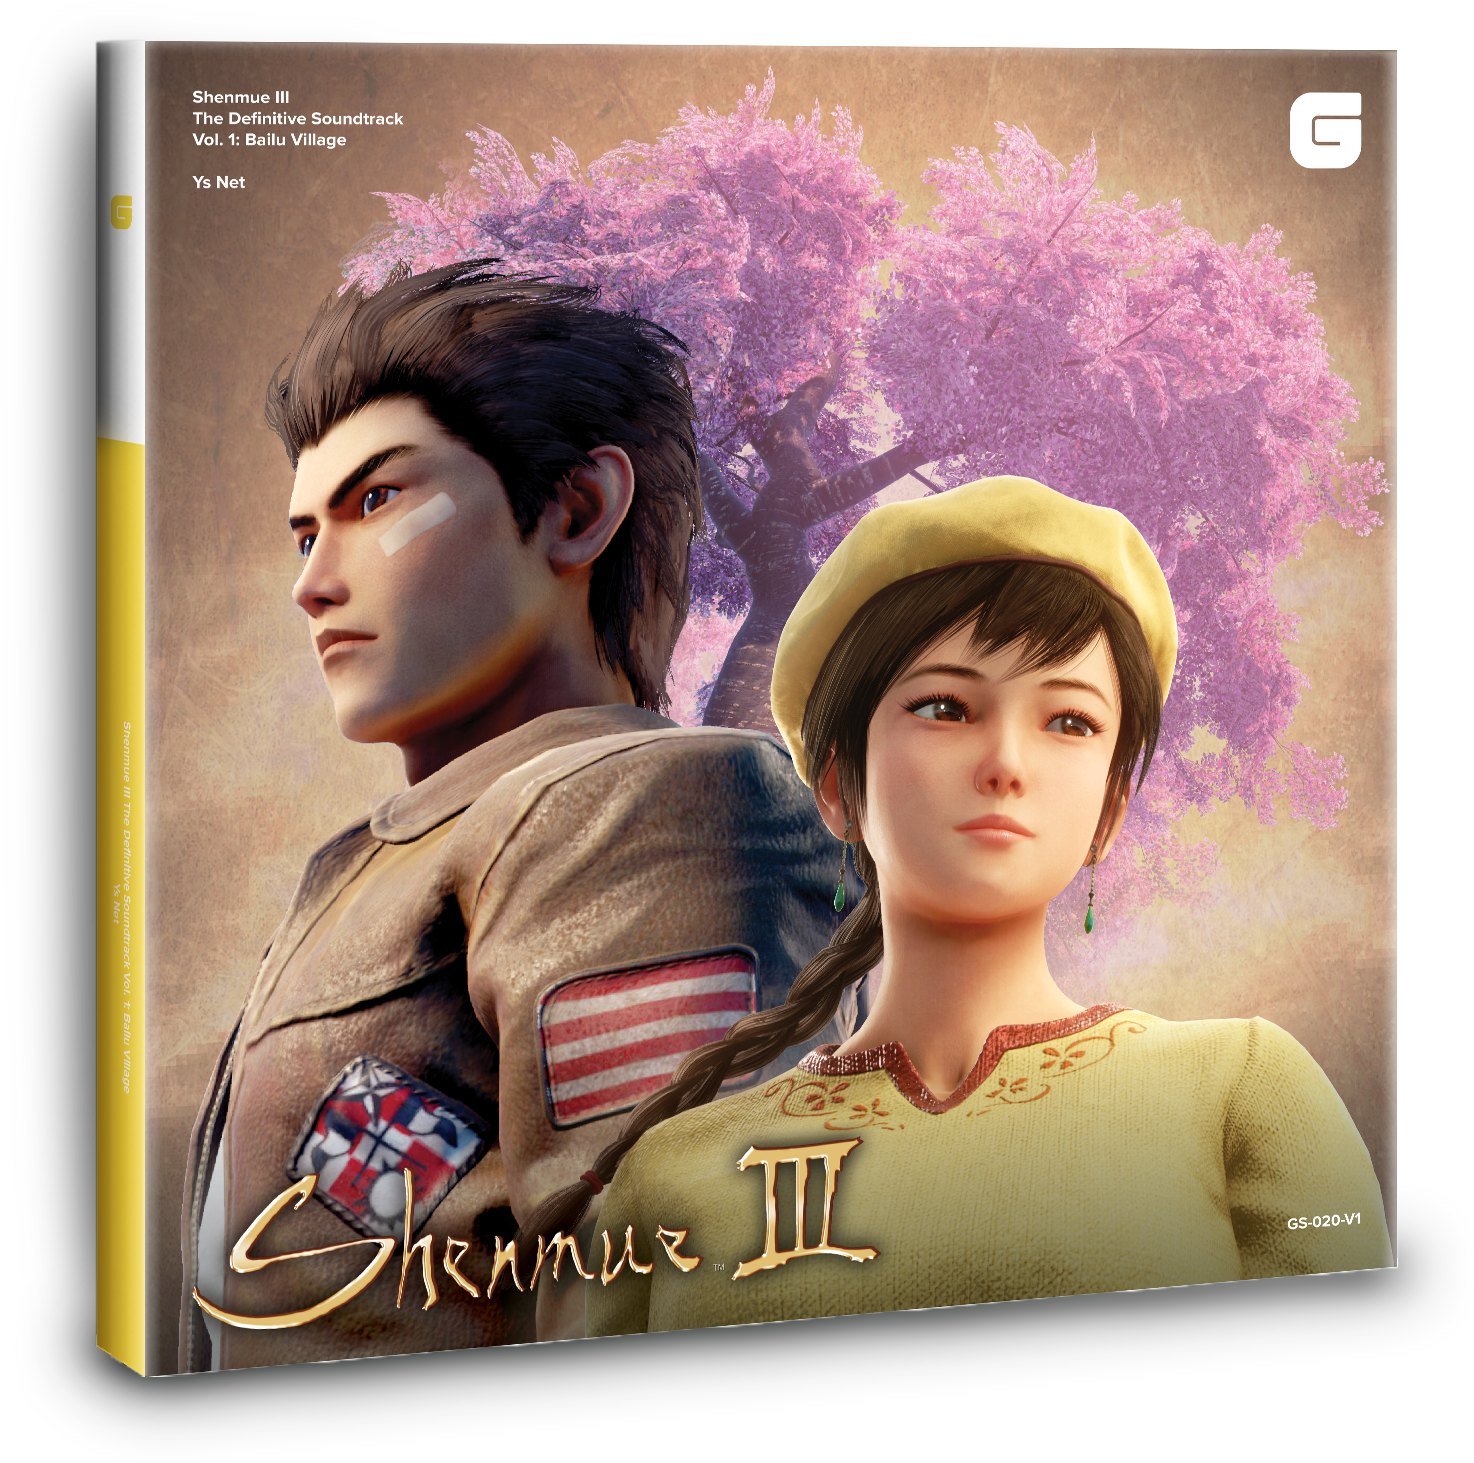 Shenmue III The Definitive Soundtrack Vol. 1: Bailu Village (GS-020-V1) Mockup. Artwork is not final and subject to change.